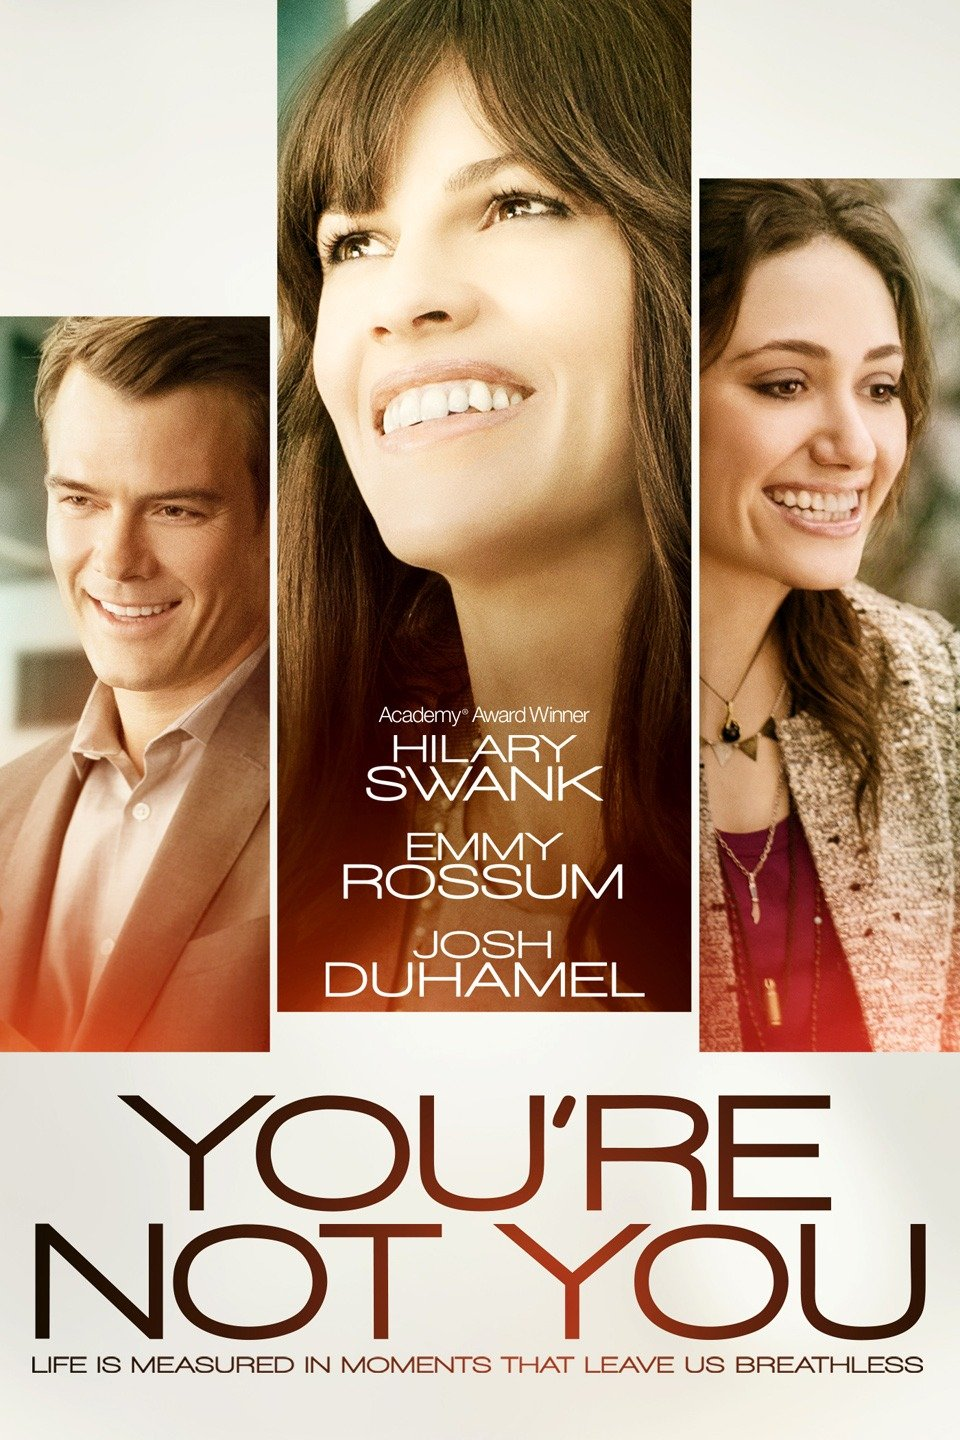 Film Review: You're NotYou